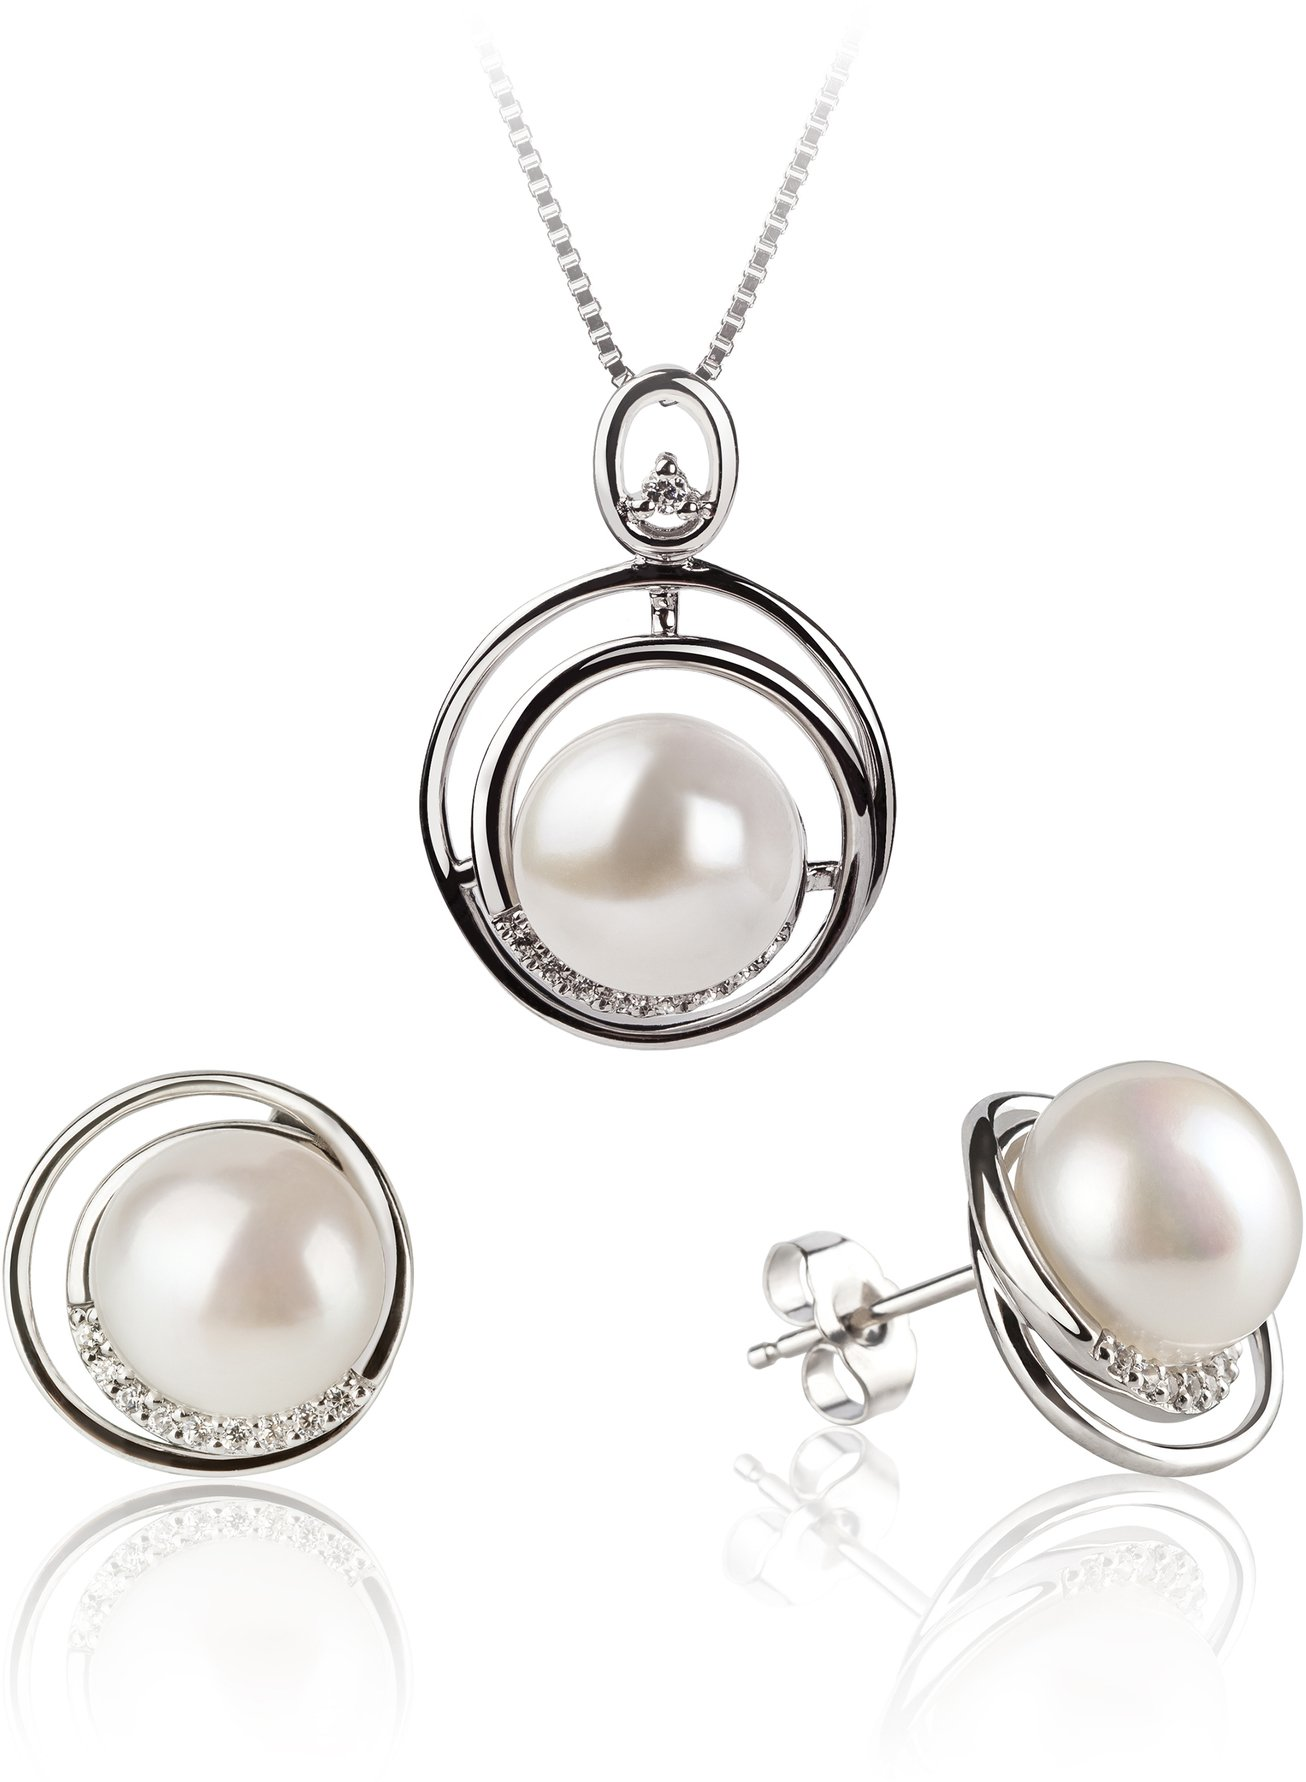 PearlsOnly - Kelly White 9-10mm AA Quality Freshwater 925 Sterling Silver Cultured Pearl Set